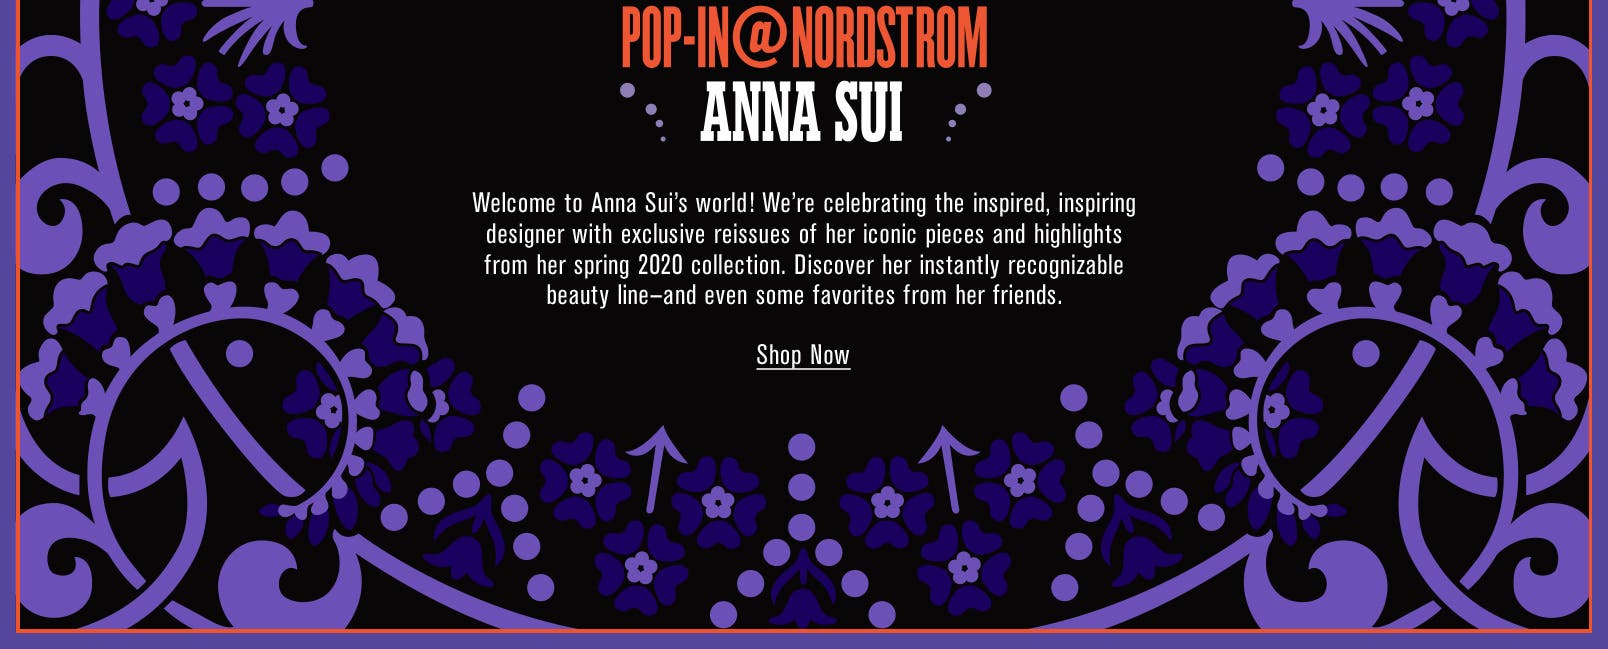 Pop-In@Nordstrom Anna Sui.